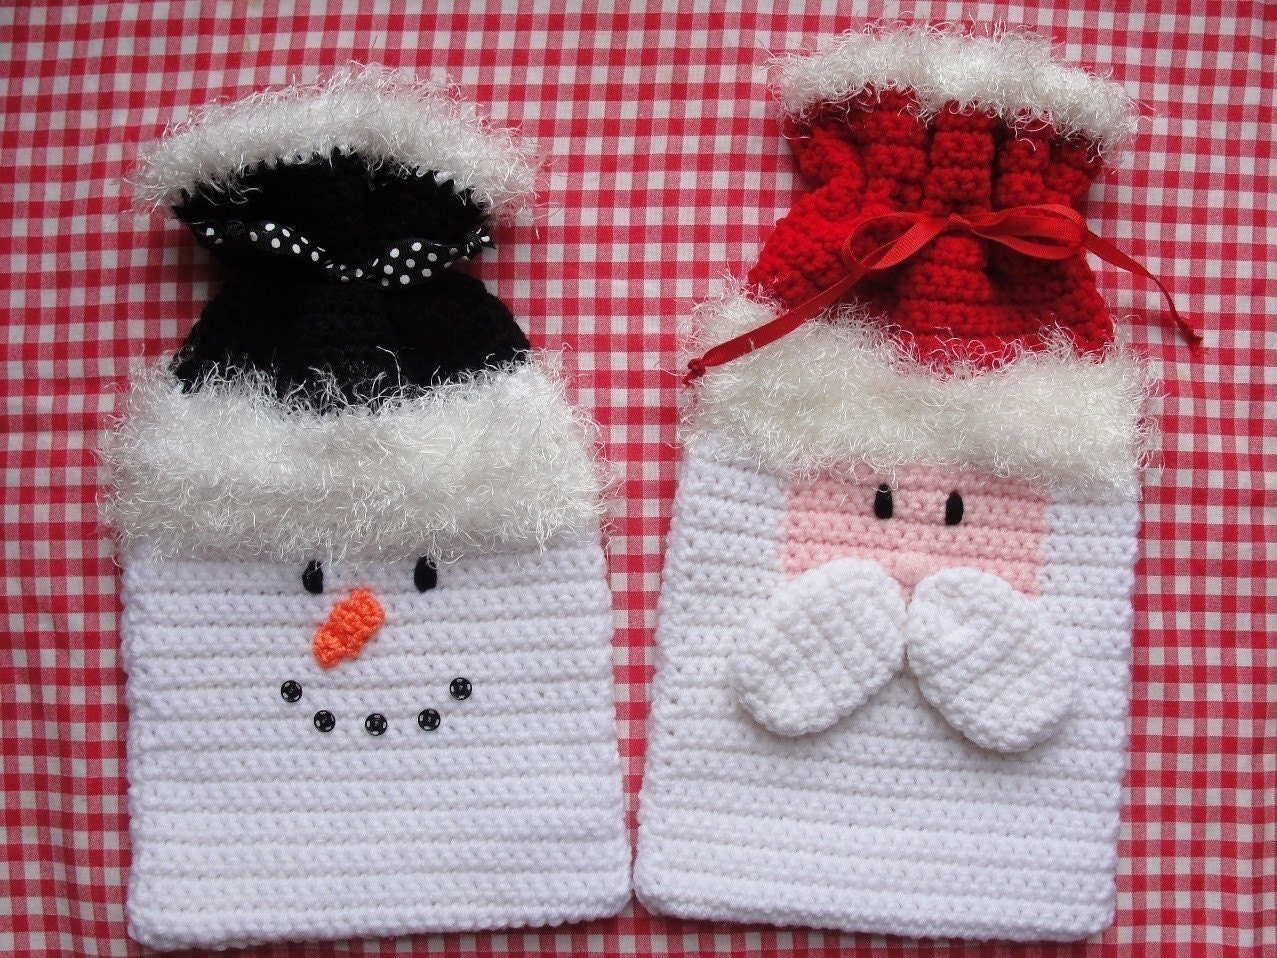 Crochet Patterns Gifts : Holiday/Christmas Gift Bags Crochet Pattern by TooCuteCrochet